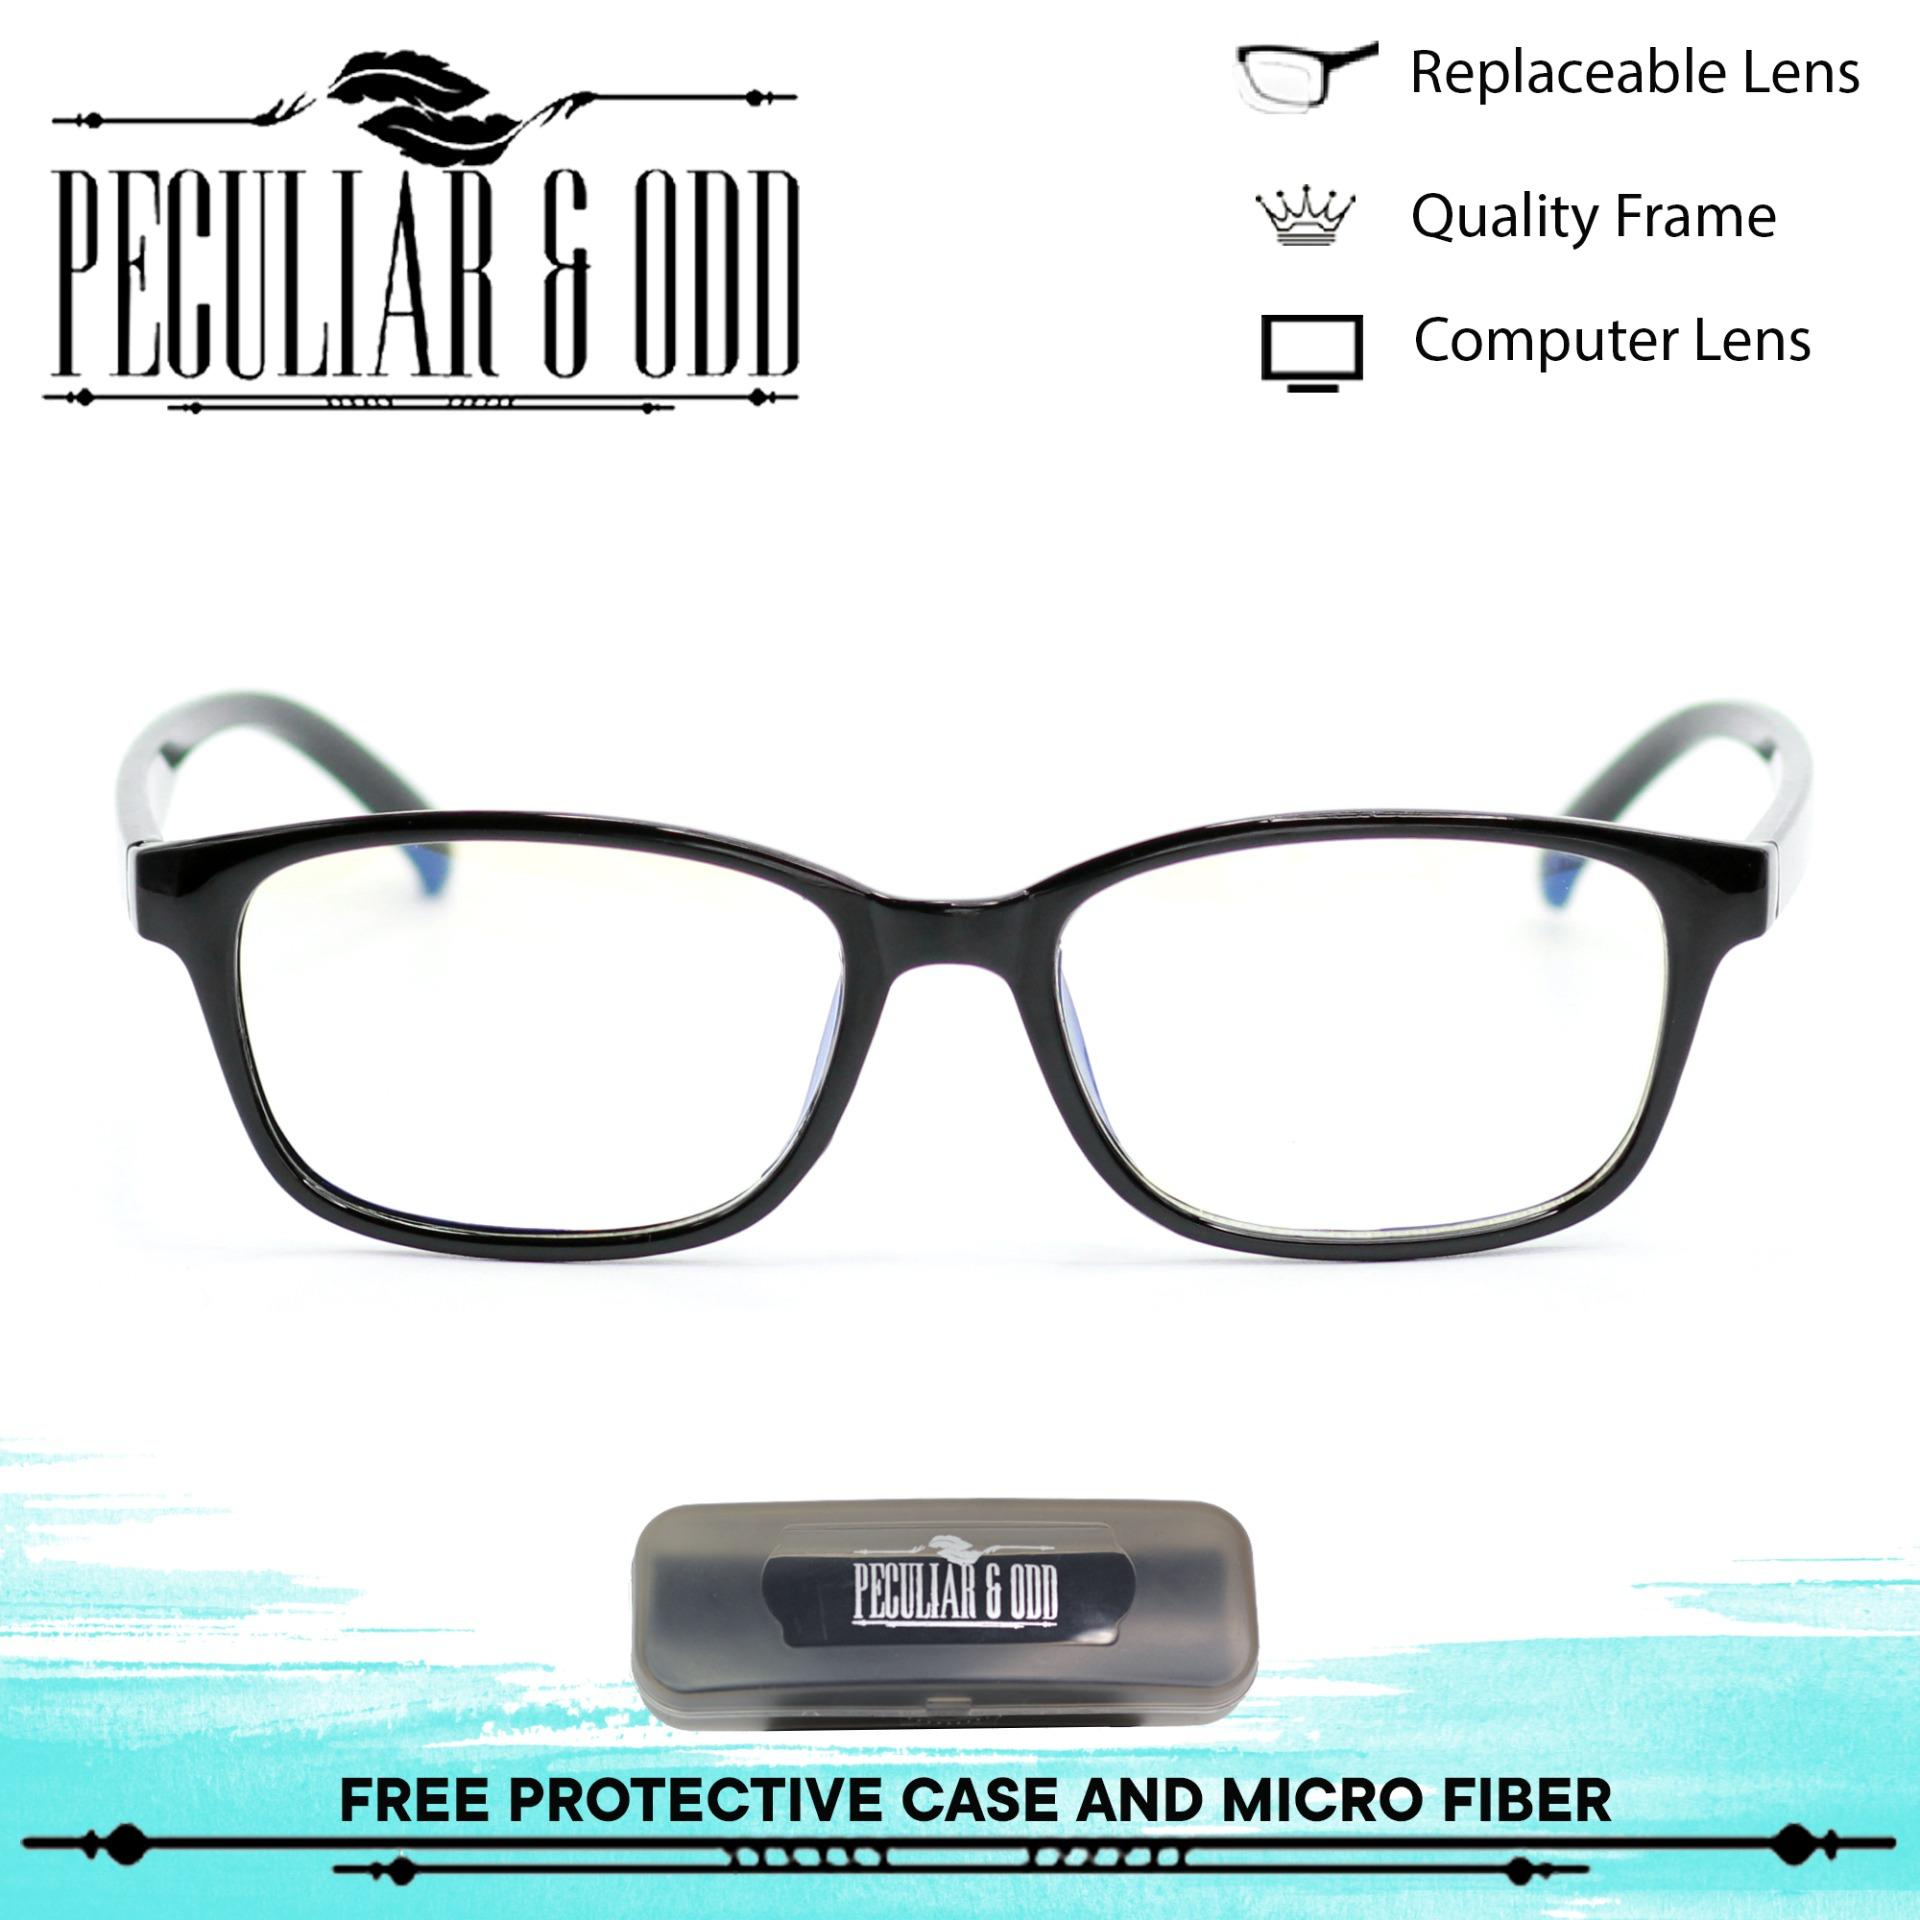 f979f4b9b1 Peculiar Square 3028 CoalBlackClear Anti Radiation Computer Eyeglass  Optical Replaceable Eyewear Unisex new